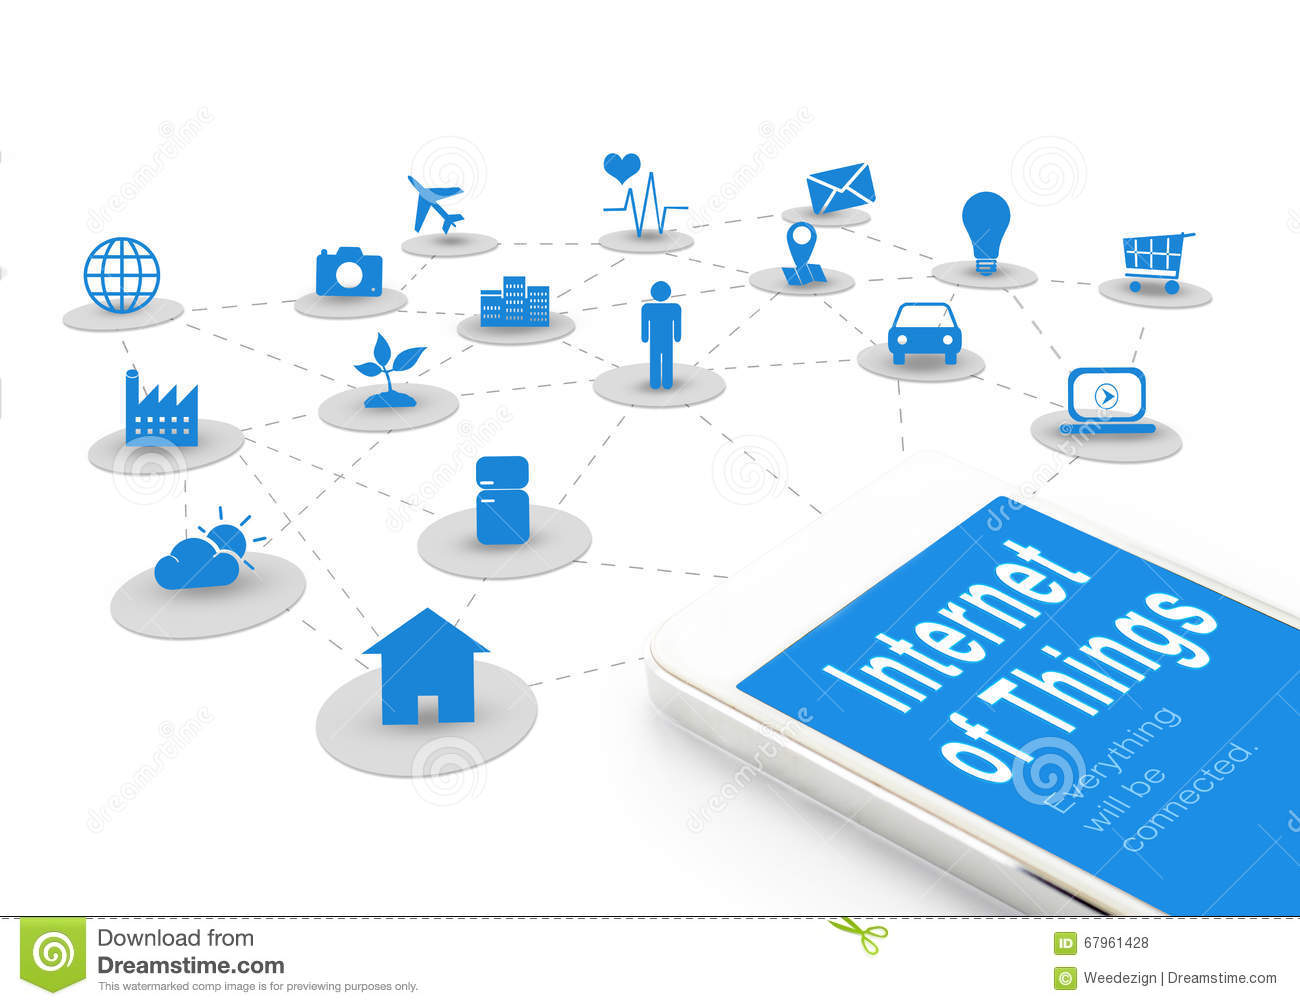 Smart phone with Internet of things (IoT) word and objects icon